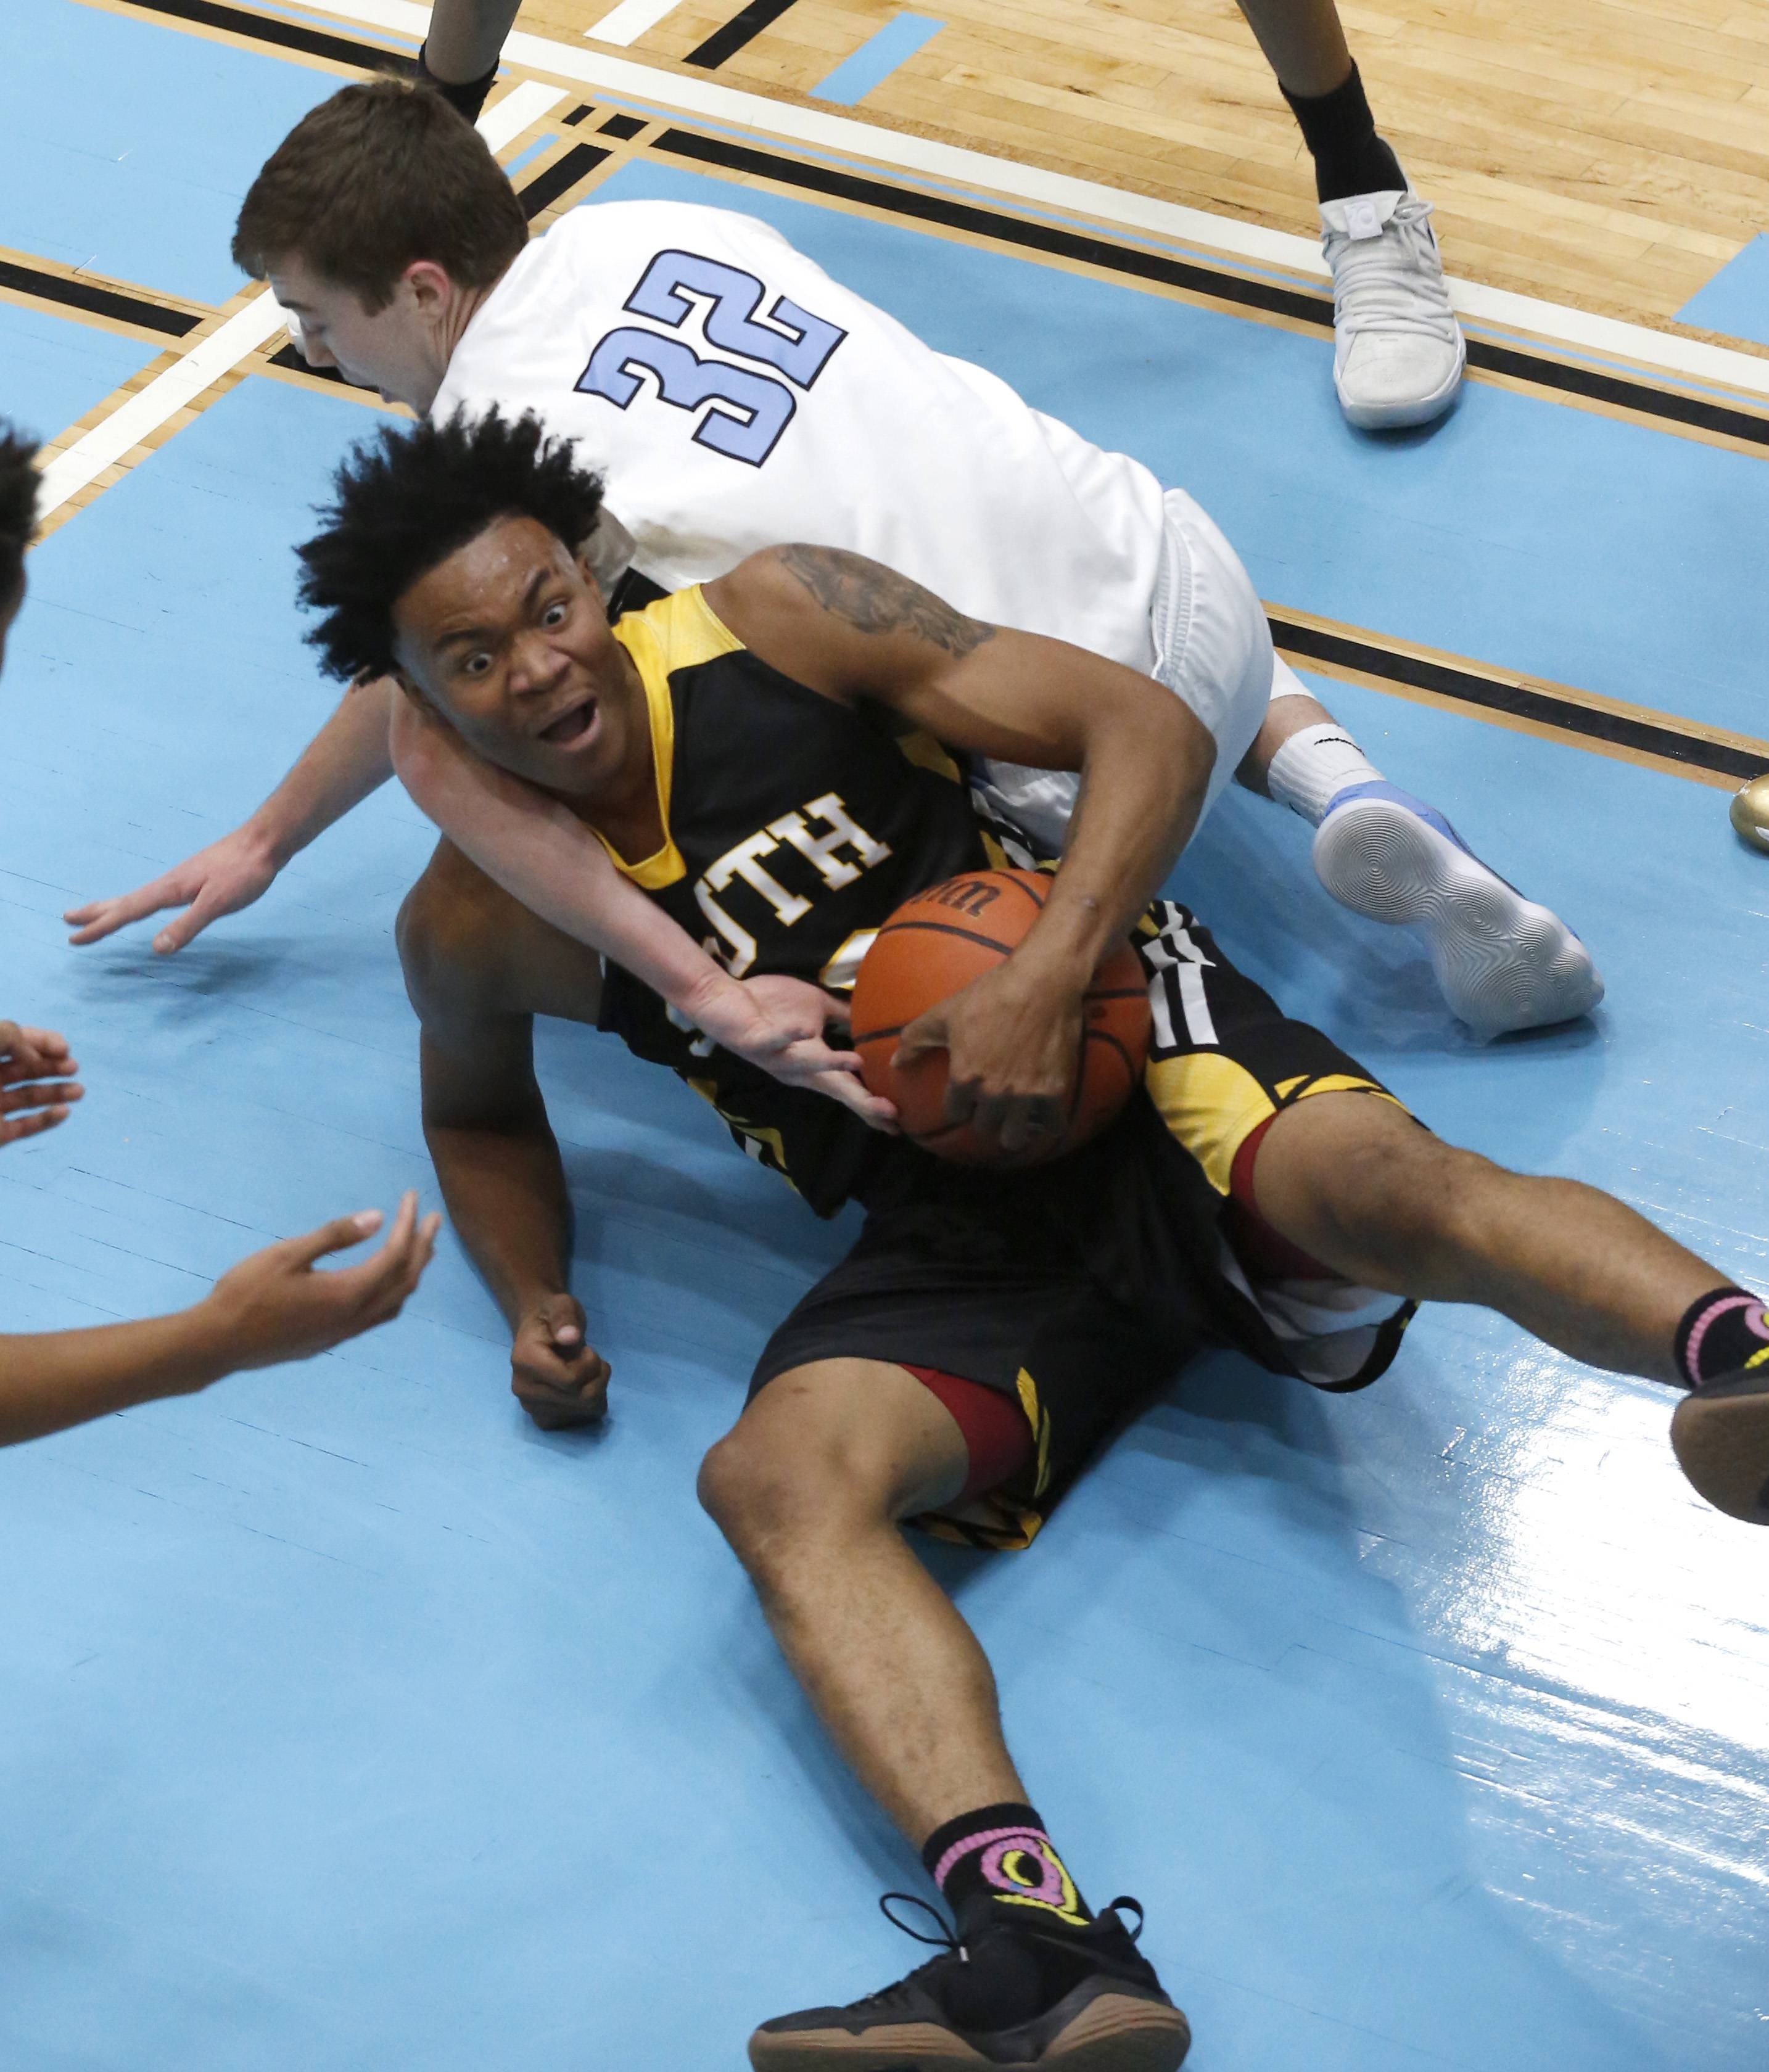 Hinsdale South's Zion Griffin calls for a time out while keeping the ball away from Willowbrook's Ethan Scheumer.